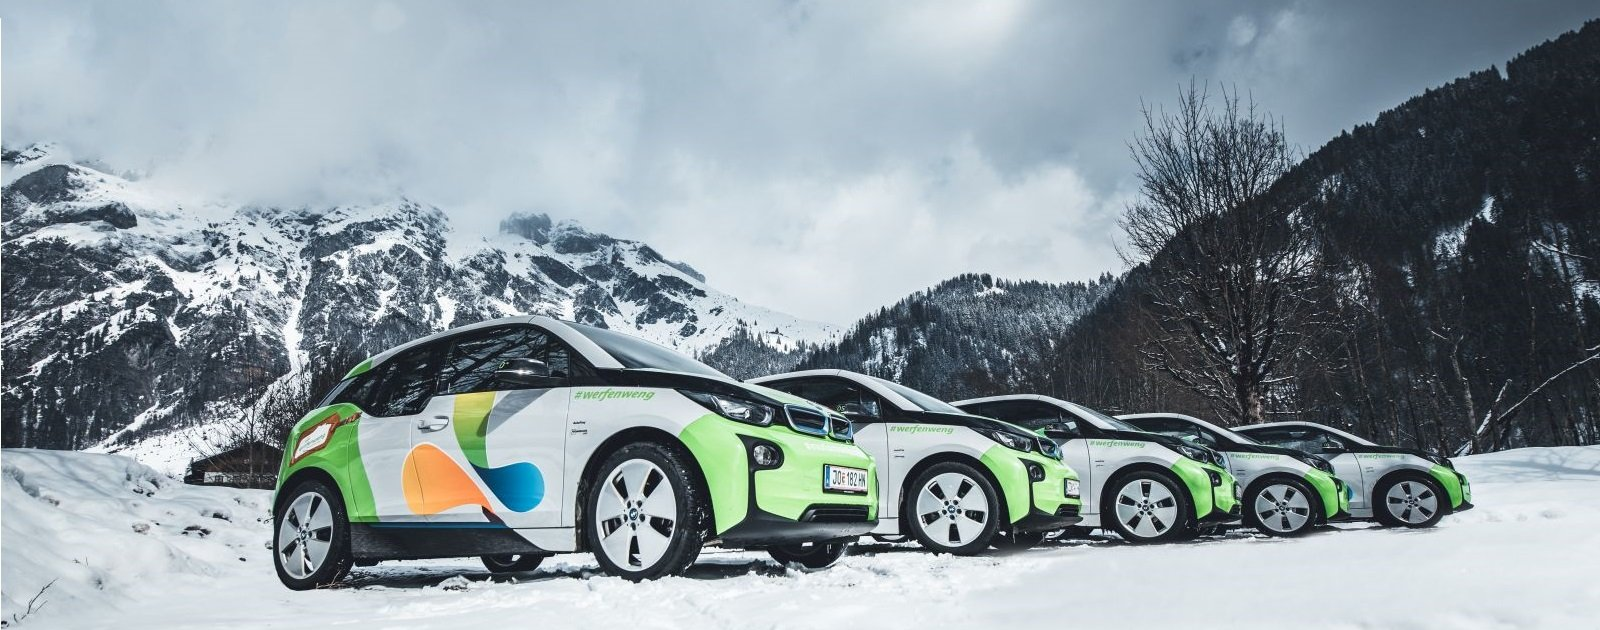 BMW i3 in Werfenweng (c) Christian Schartner